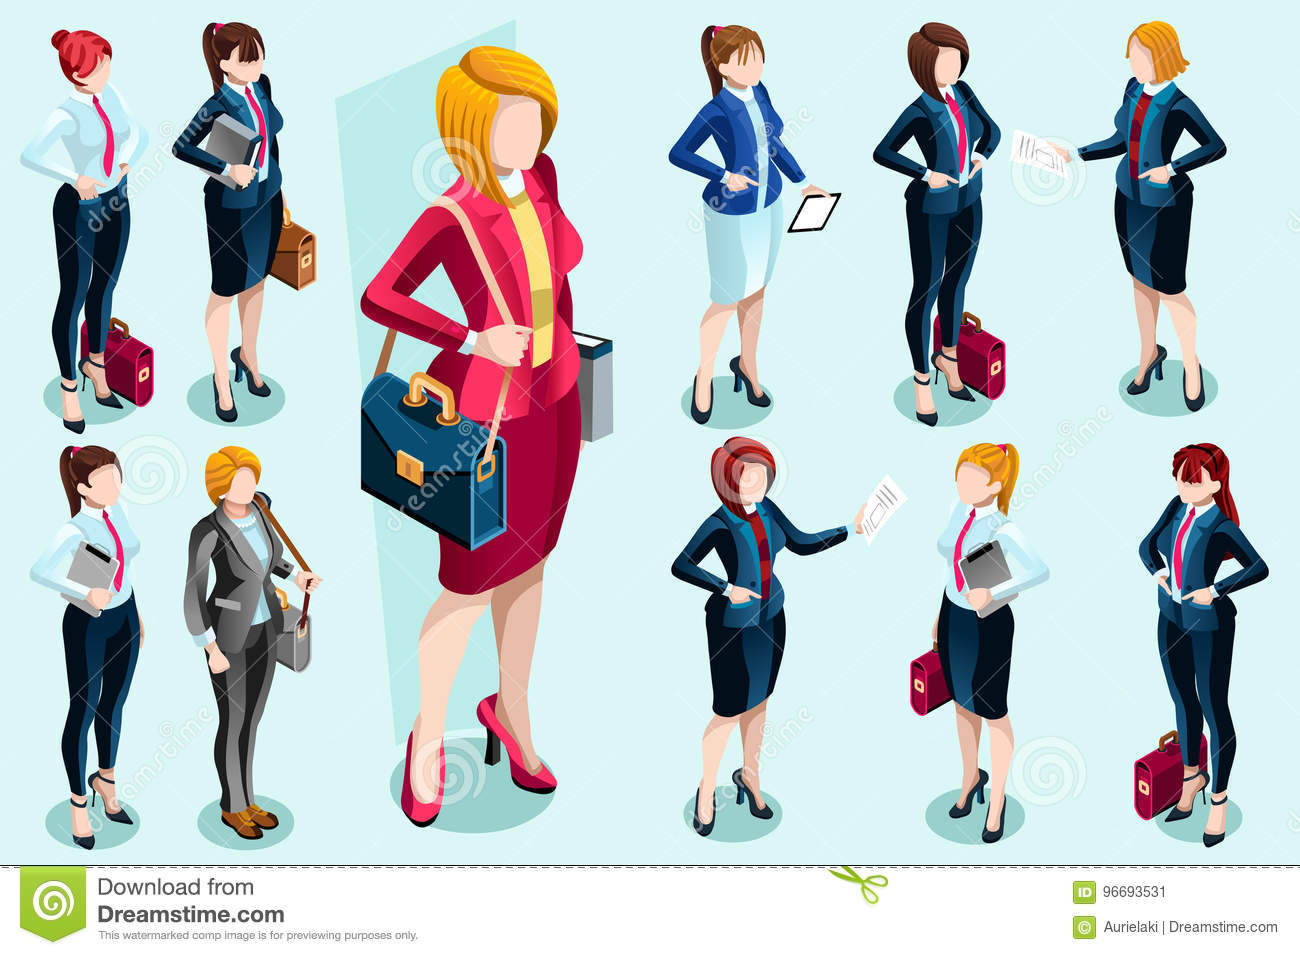 isometric people vector people images stock vector illustration of